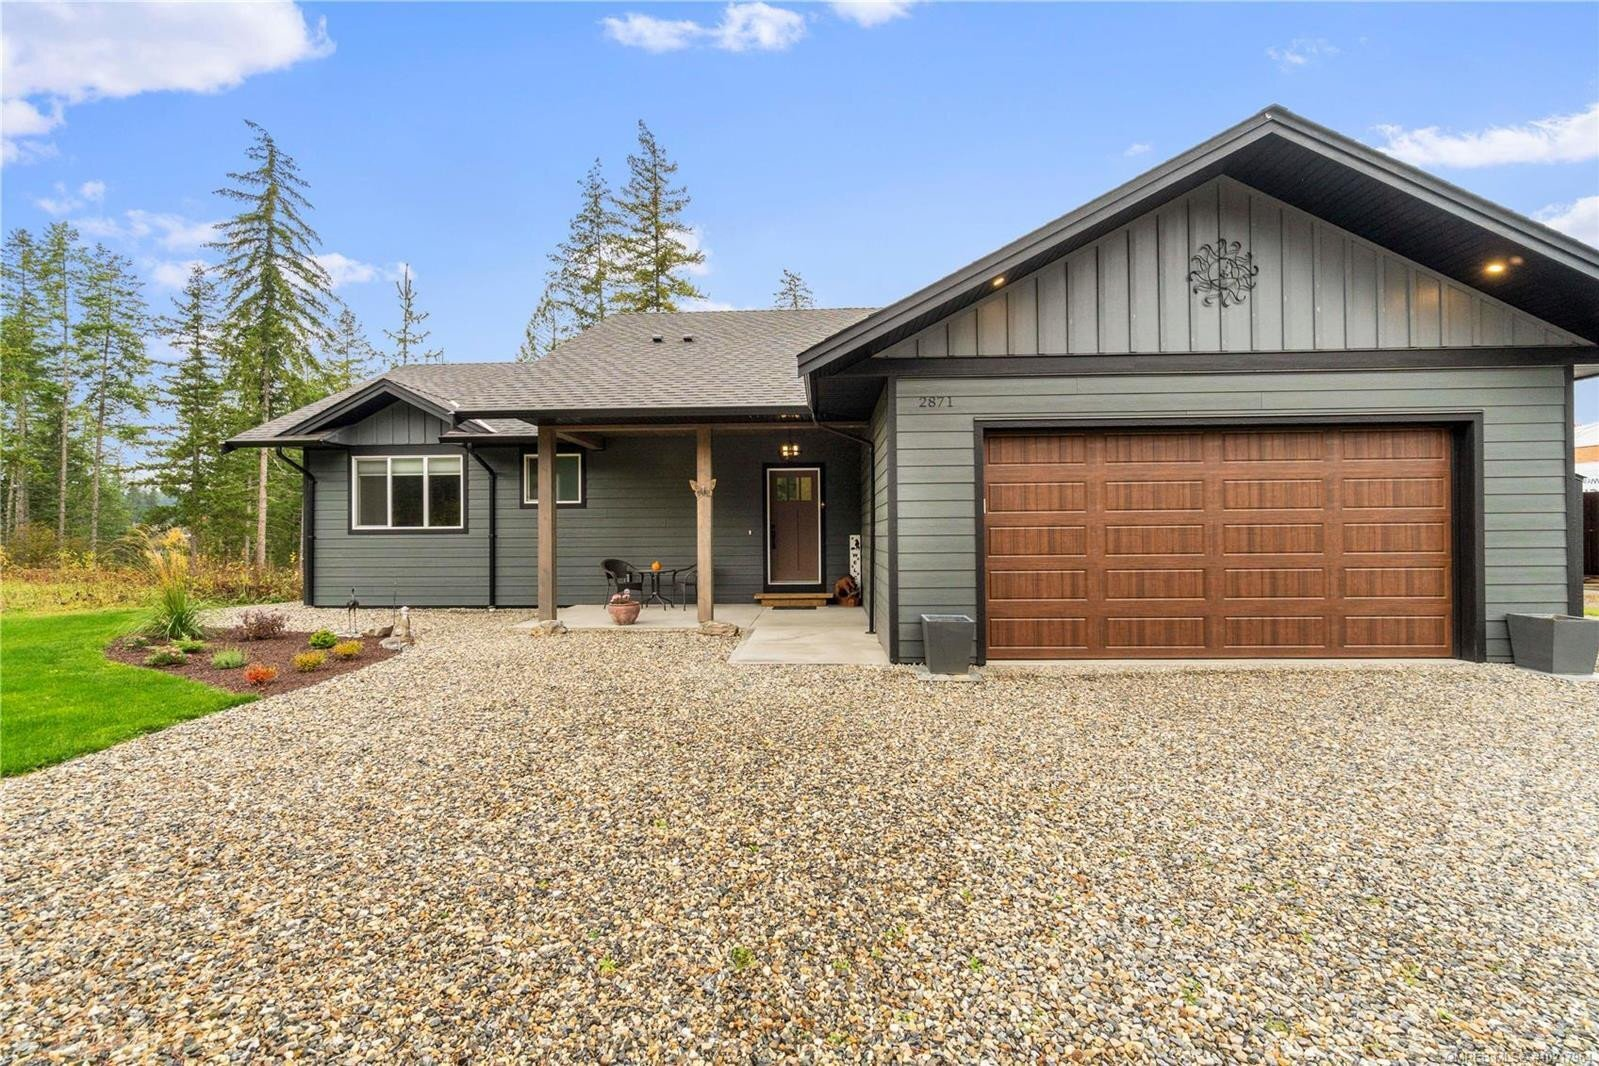 House for sale at 2871 Golf Course Dr Blind Bay British Columbia - MLS: 10217964